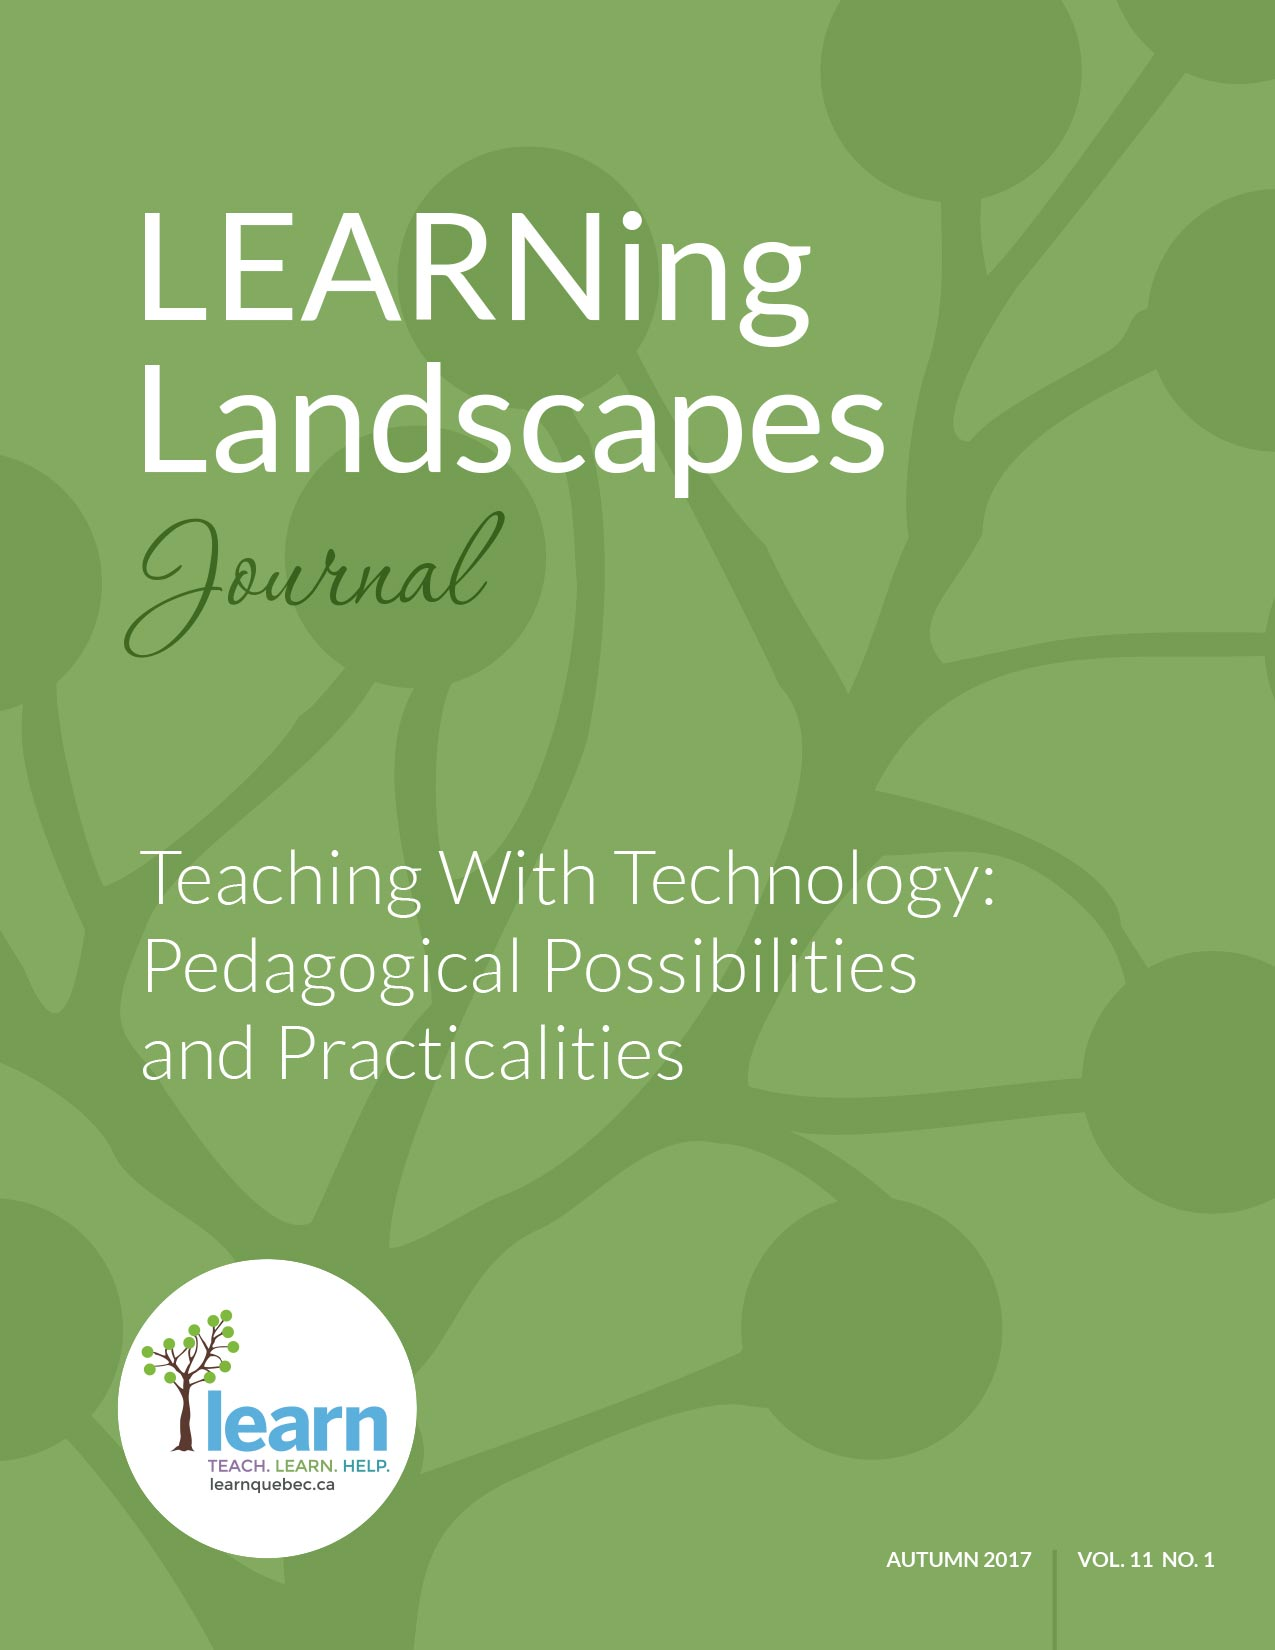 Vol.11 No.1 Teaching With Technology:  Pedagogical Possibilities and Practicalities